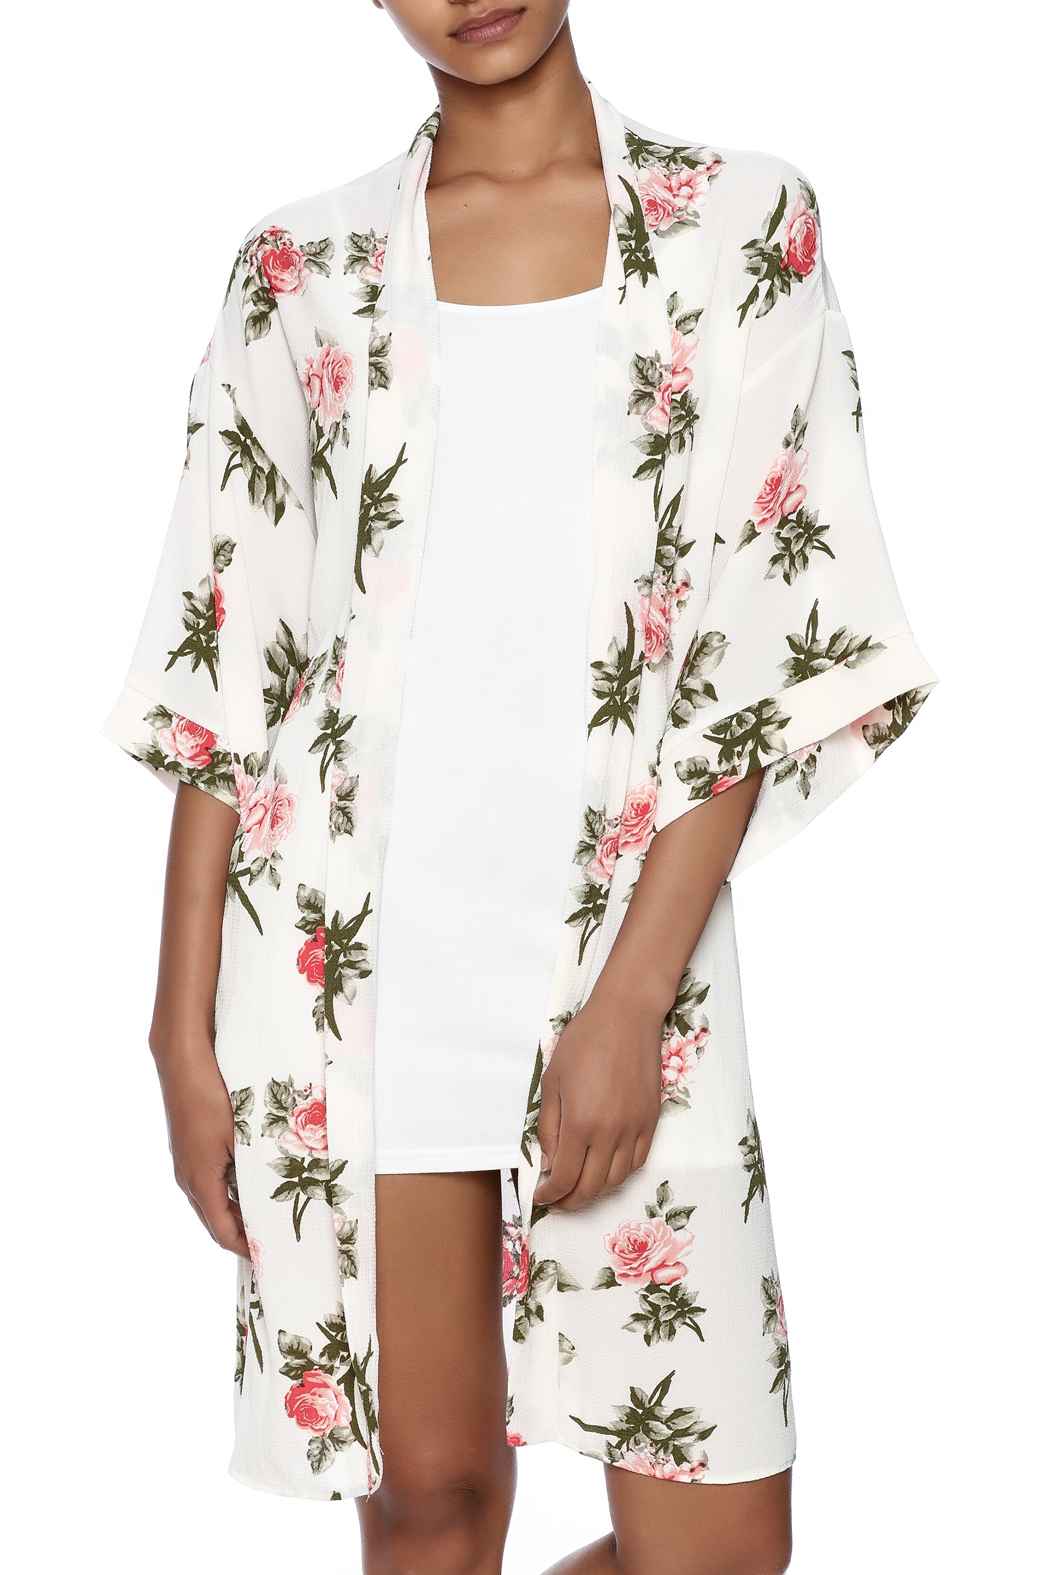 Coveted Clothing Rose Print Robe - Main Image